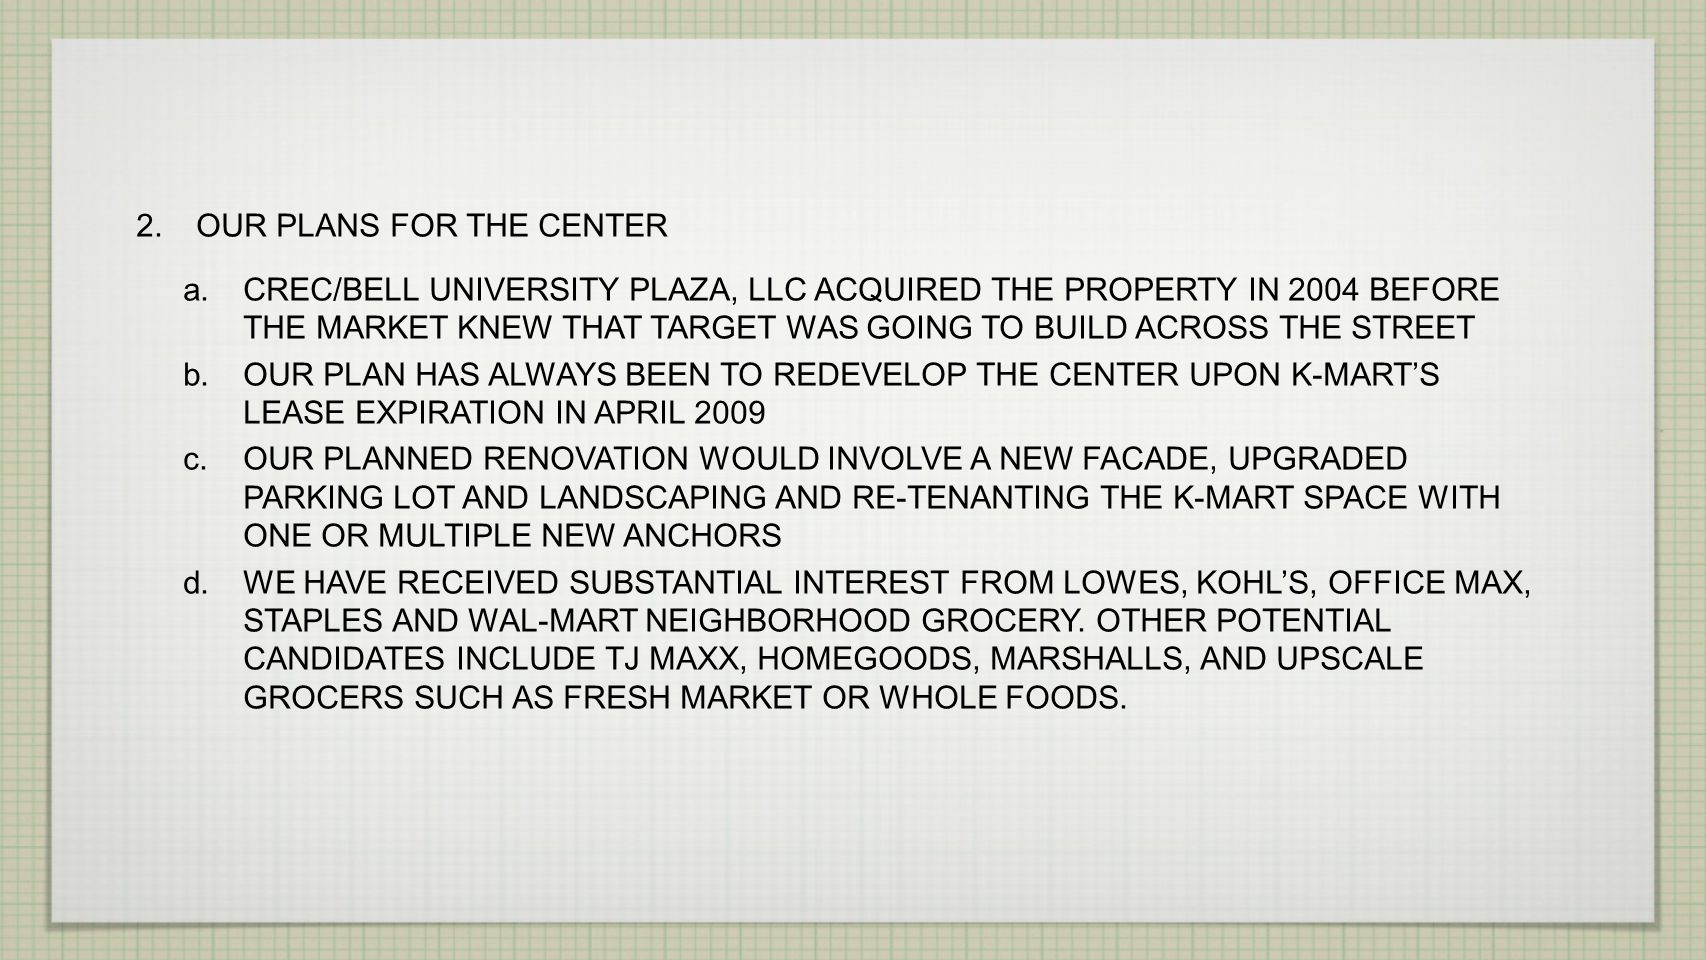 2.OUR PLANS FOR THE CENTER a.CREC/BELL UNIVERSITY PLAZA, LLC ACQUIRED THE PROPERTY IN 2004 BEFORE THE MARKET KNEW THAT TARGET WAS GOING TO BUILD ACROSS THE STREET b.OUR PLAN HAS ALWAYS BEEN TO REDEVELOP THE CENTER UPON K-MARTS LEASE EXPIRATION IN APRIL 2009 c.OUR PLANNED RENOVATION WOULD INVOLVE A NEW FACADE, UPGRADED PARKING LOT AND LANDSCAPING AND RE-TENANTING THE K-MART SPACE WITH ONE OR MULTIPLE NEW ANCHORS d.WE HAVE RECEIVED SUBSTANTIAL INTEREST FROM LOWES, KOHLS, OFFICE MAX, STAPLES AND WAL-MART NEIGHBORHOOD GROCERY.